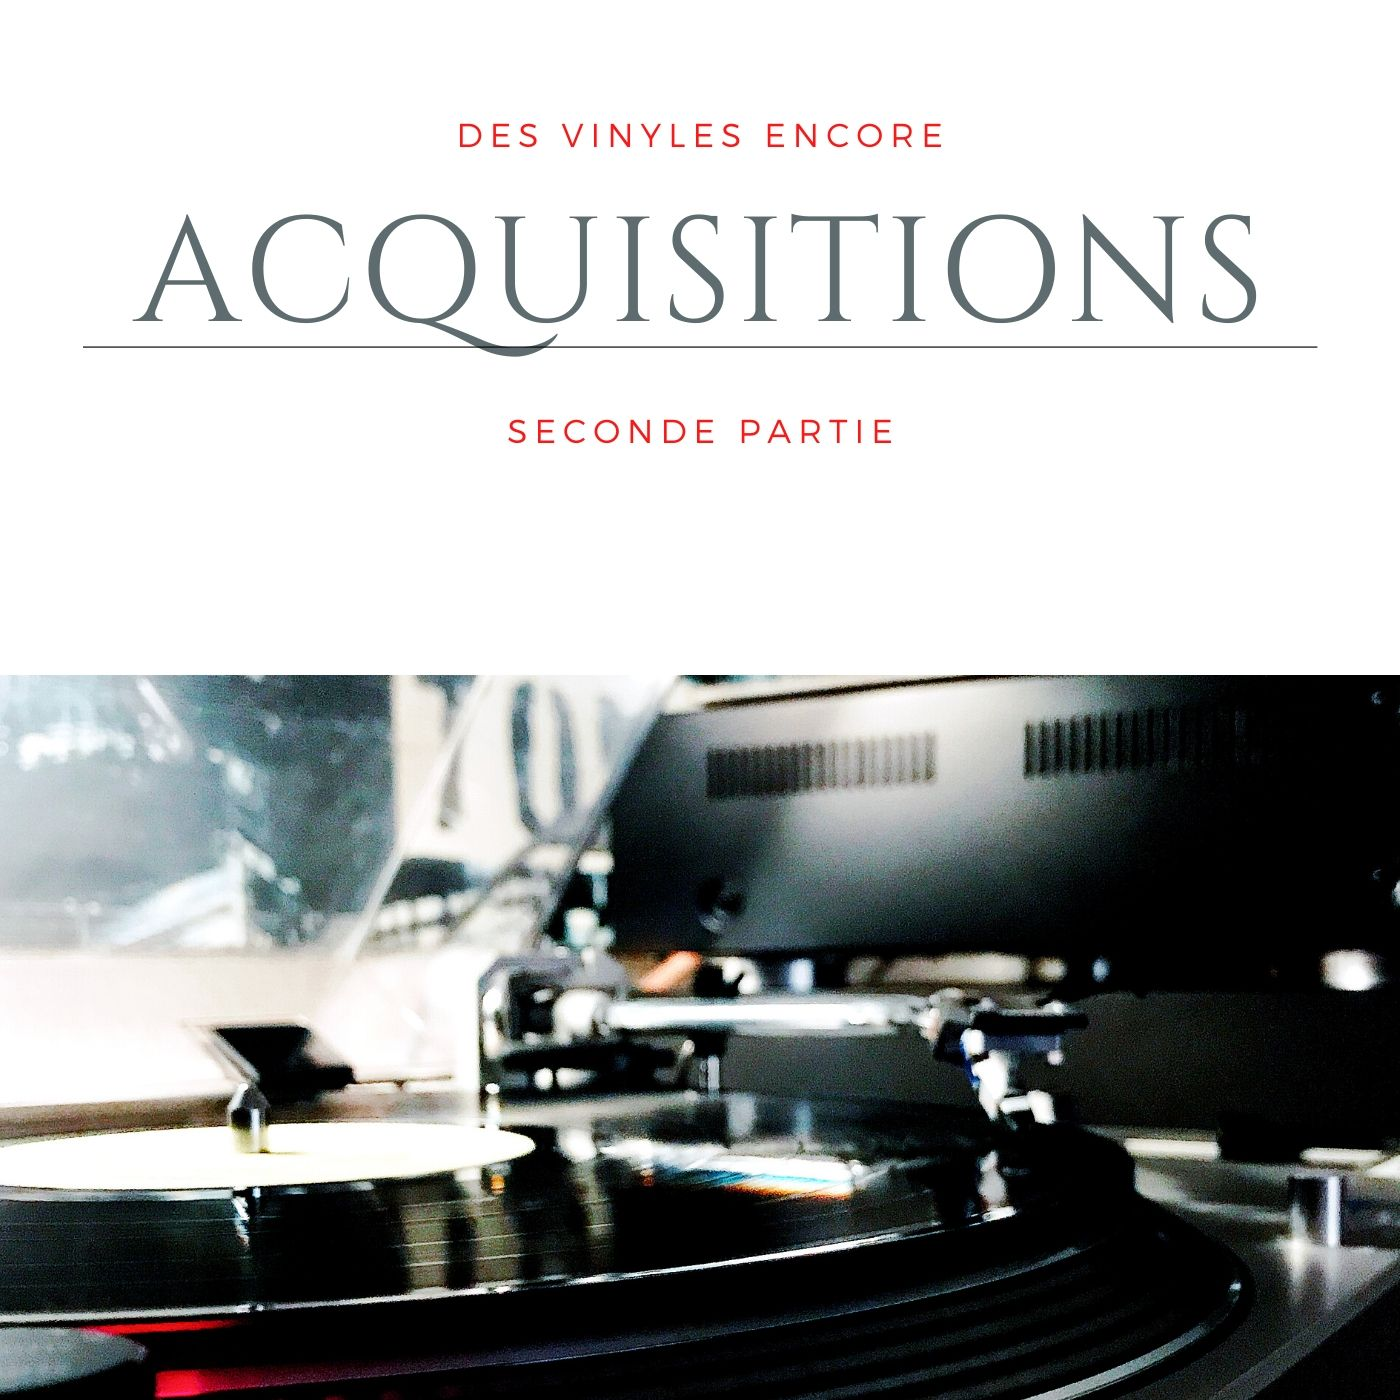 Vlog Notes acquisitions Vinyles, seconde partie !